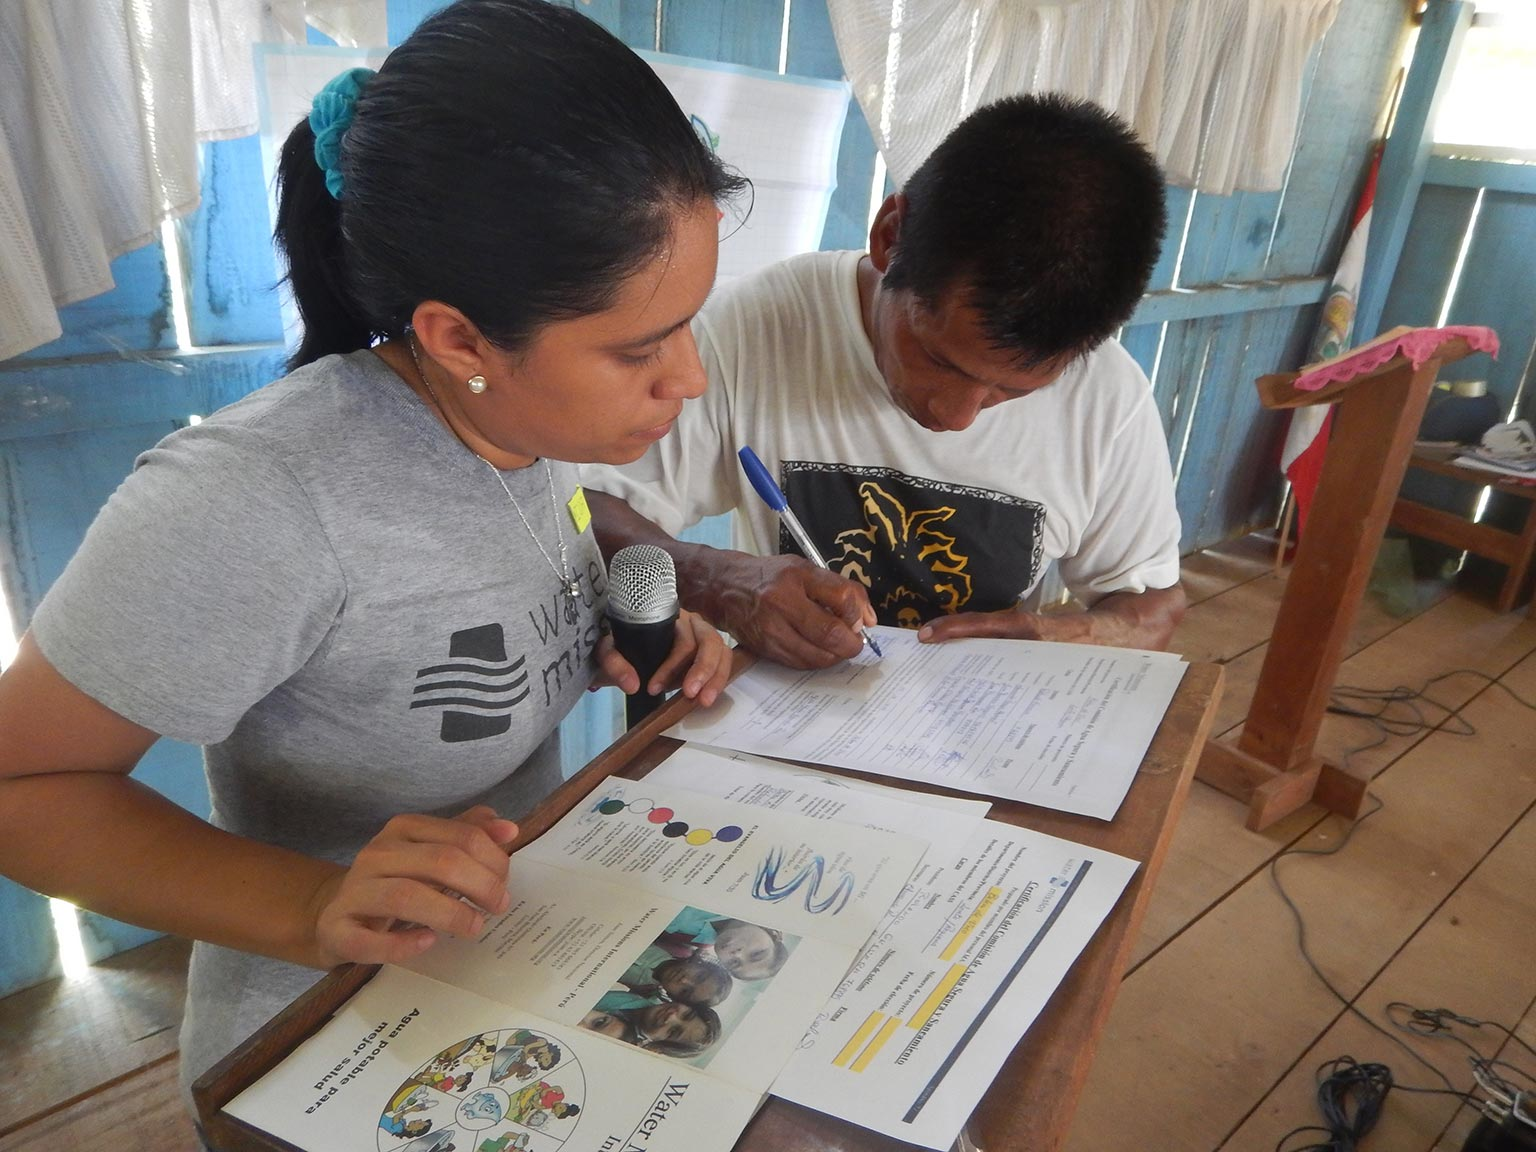 Water Mission Peru staff train community safe water committee members on proper hygiene practices.